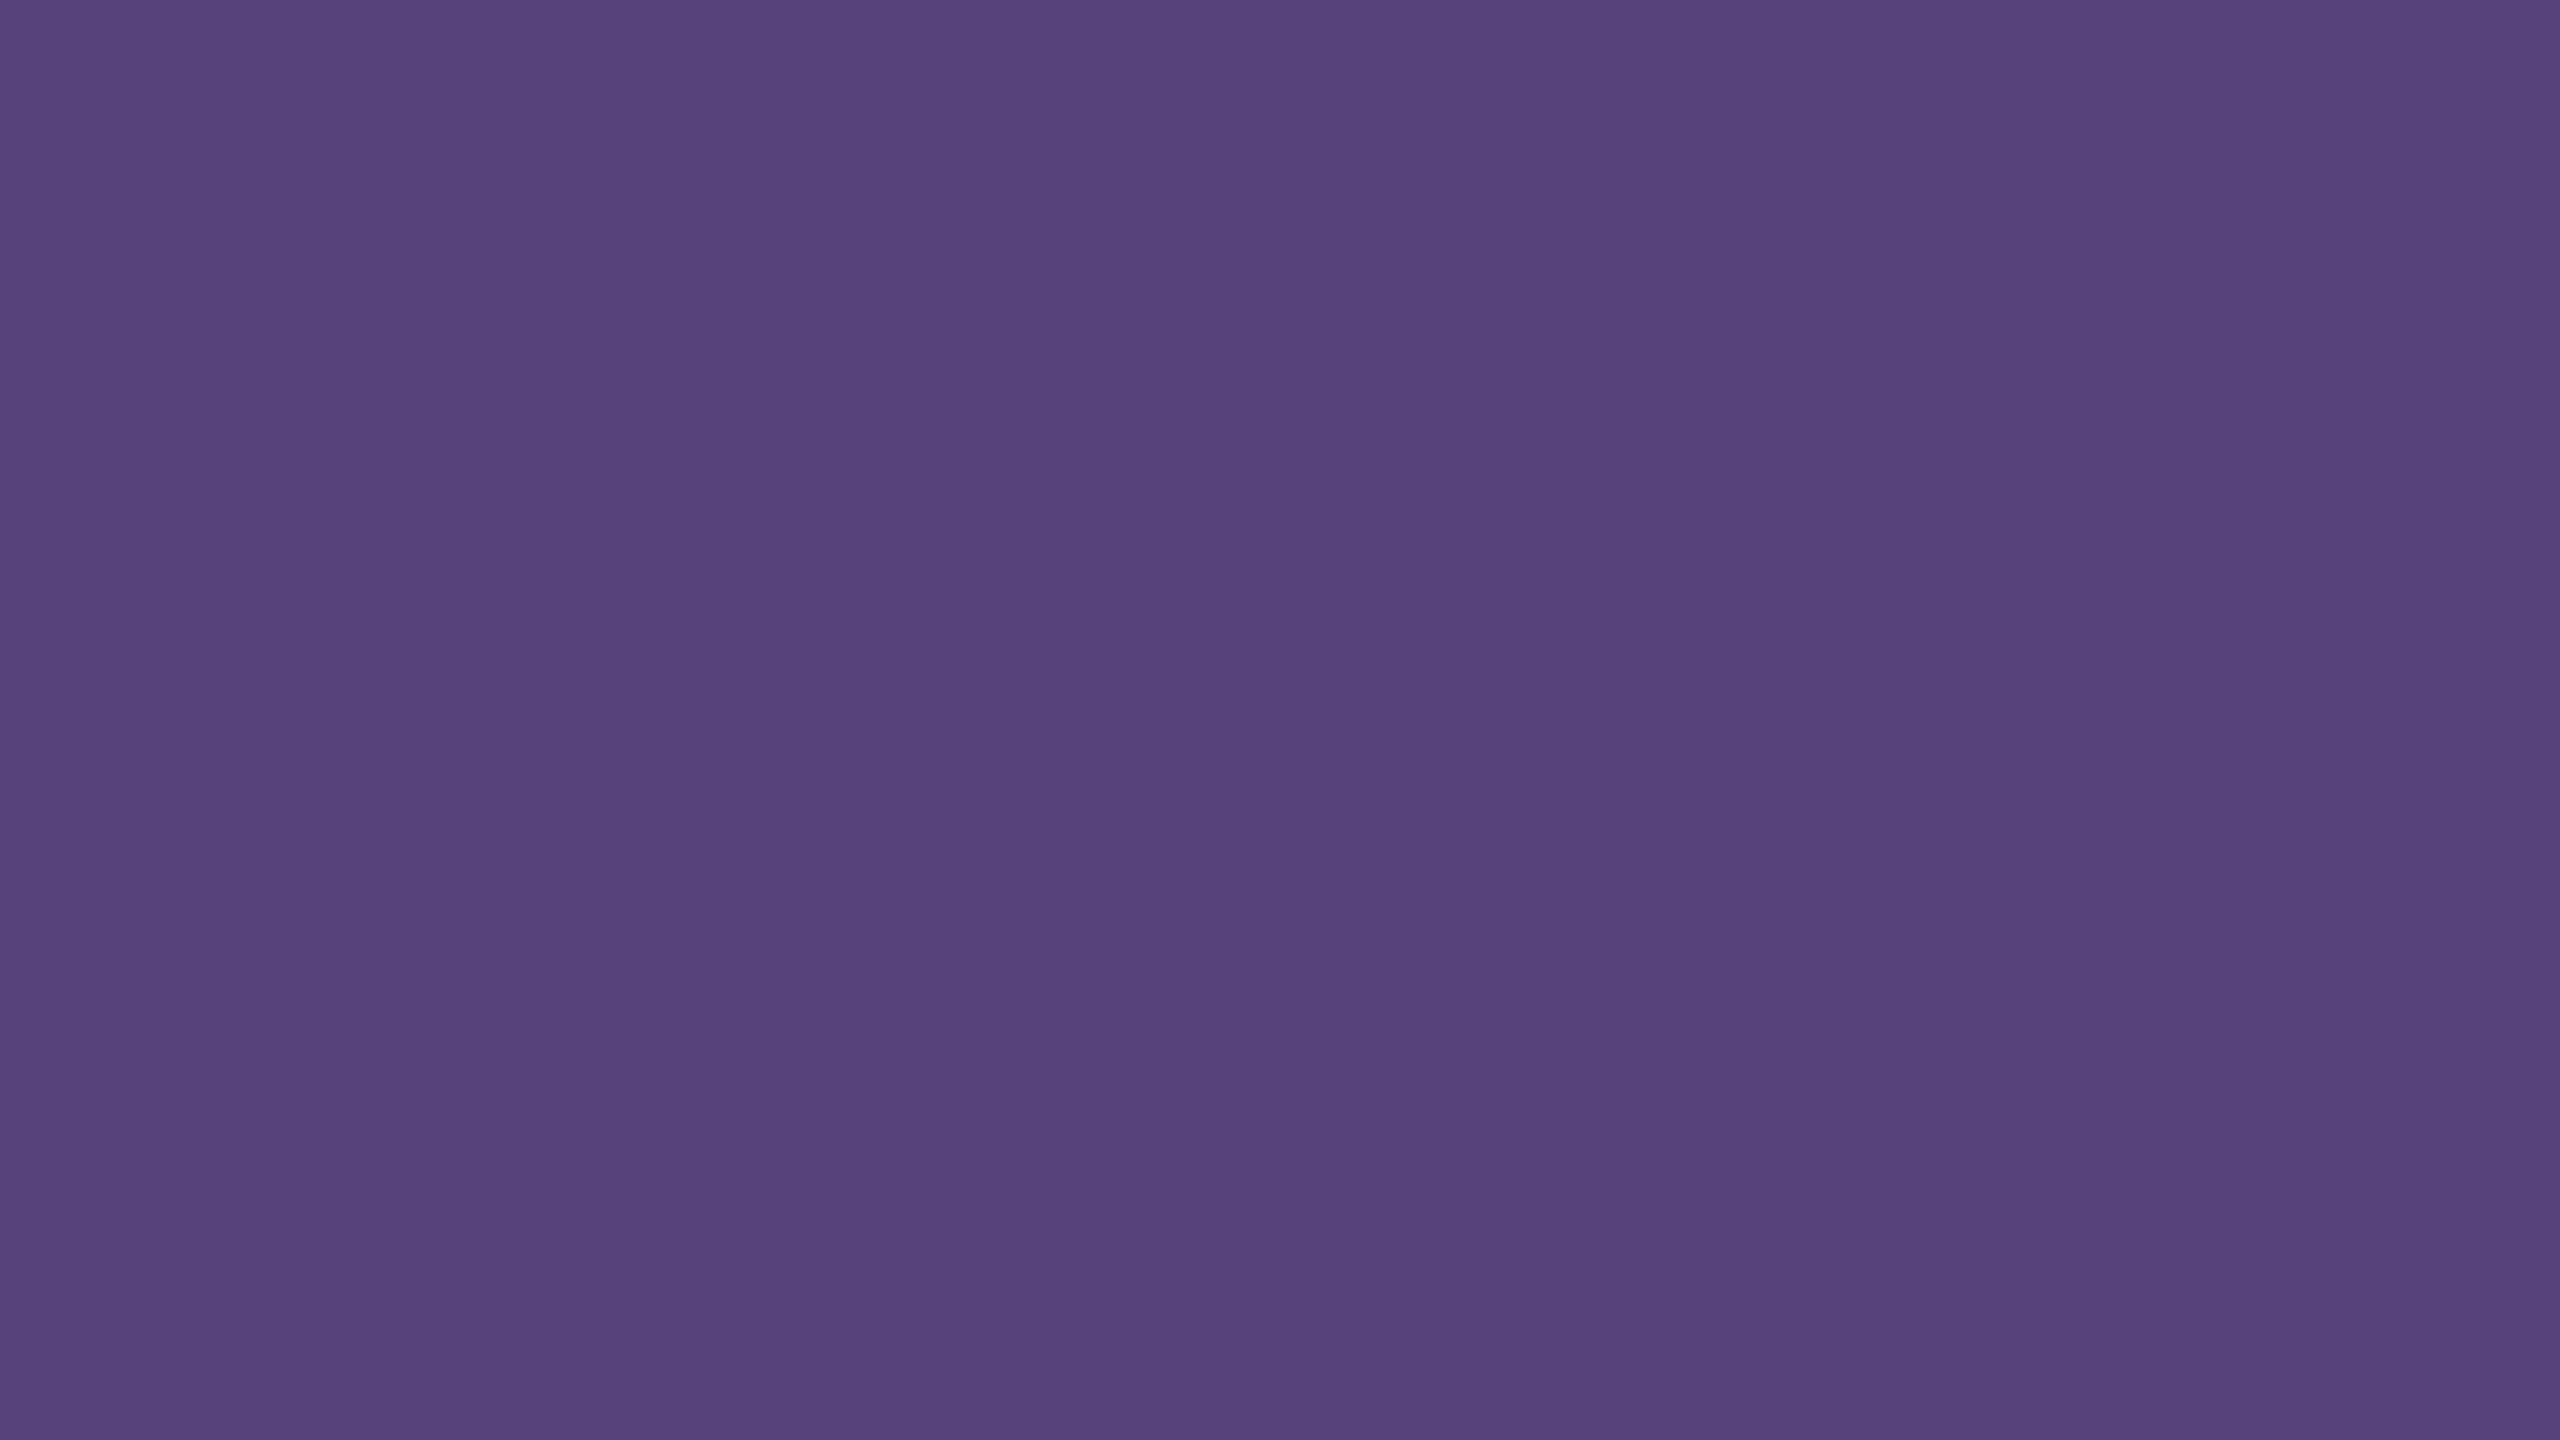 Free 2560x1440 resolution cyber grape solid color background view and